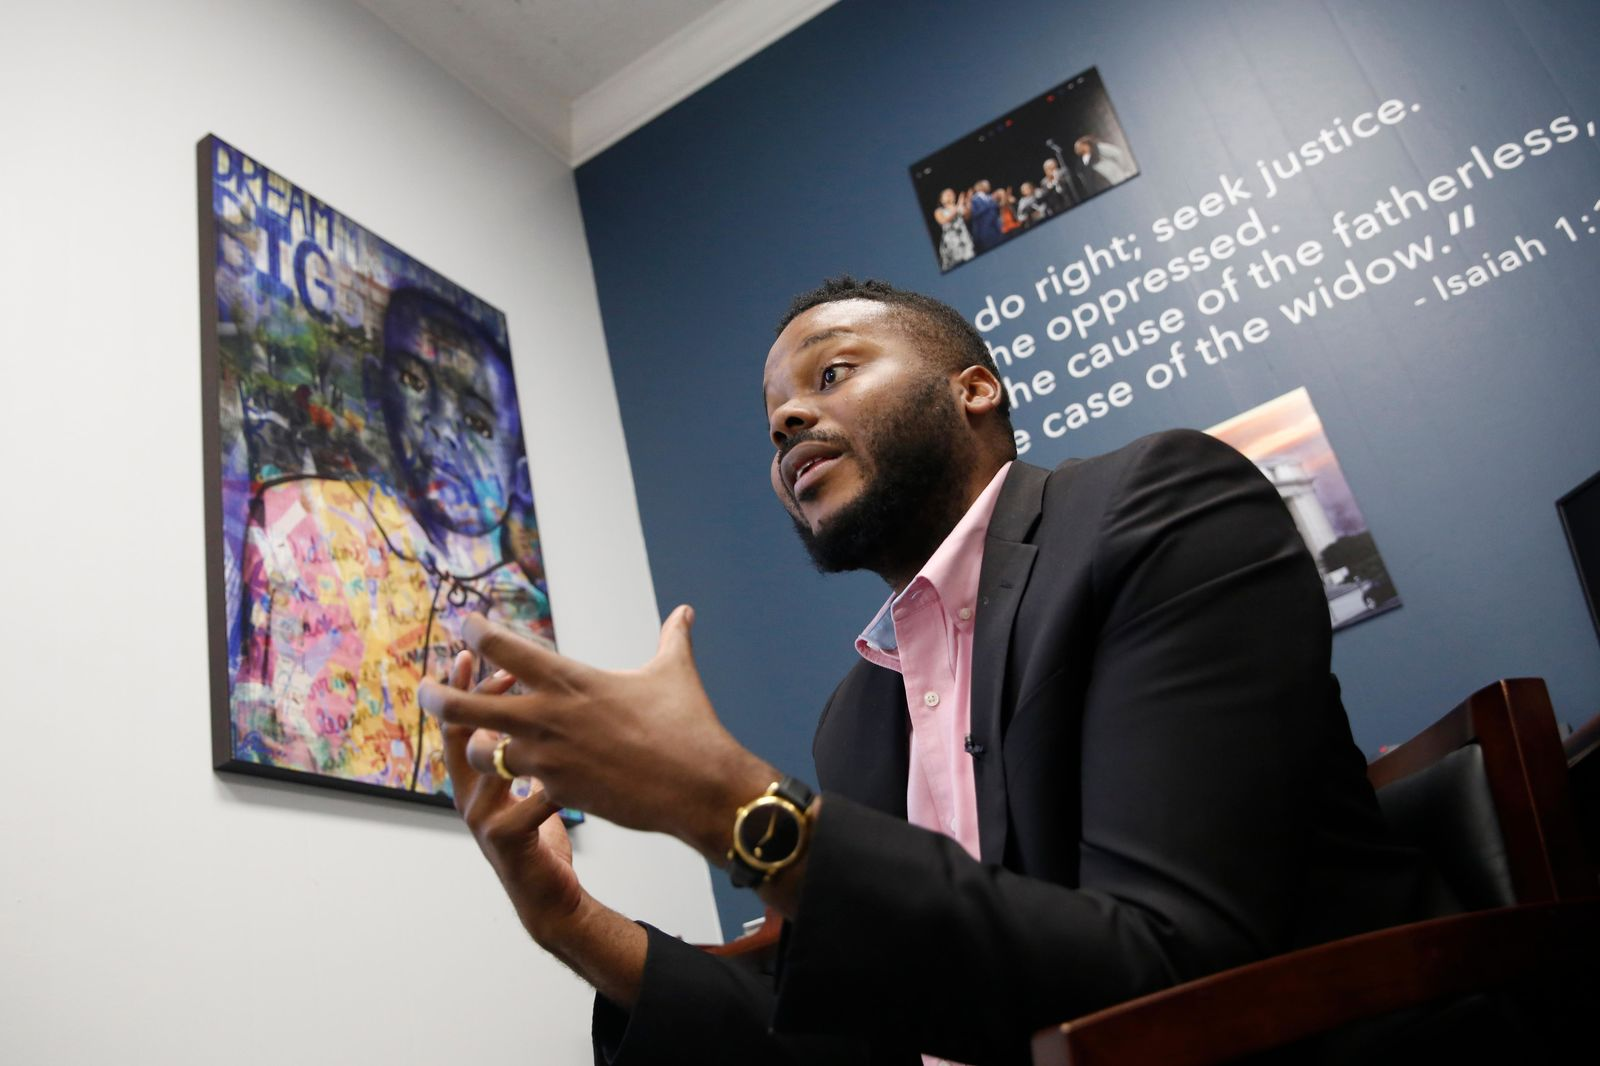 In this photo taken Wednesday Aug. 14, 2019, Stockton Mayor Michael Tubbs discusses a program he initiated to give $500 to 125 people who earn at or below the city's median household income of $46,033 during an interview in Stockton, Calif. (AP Photo/Rich Pedroncelli)